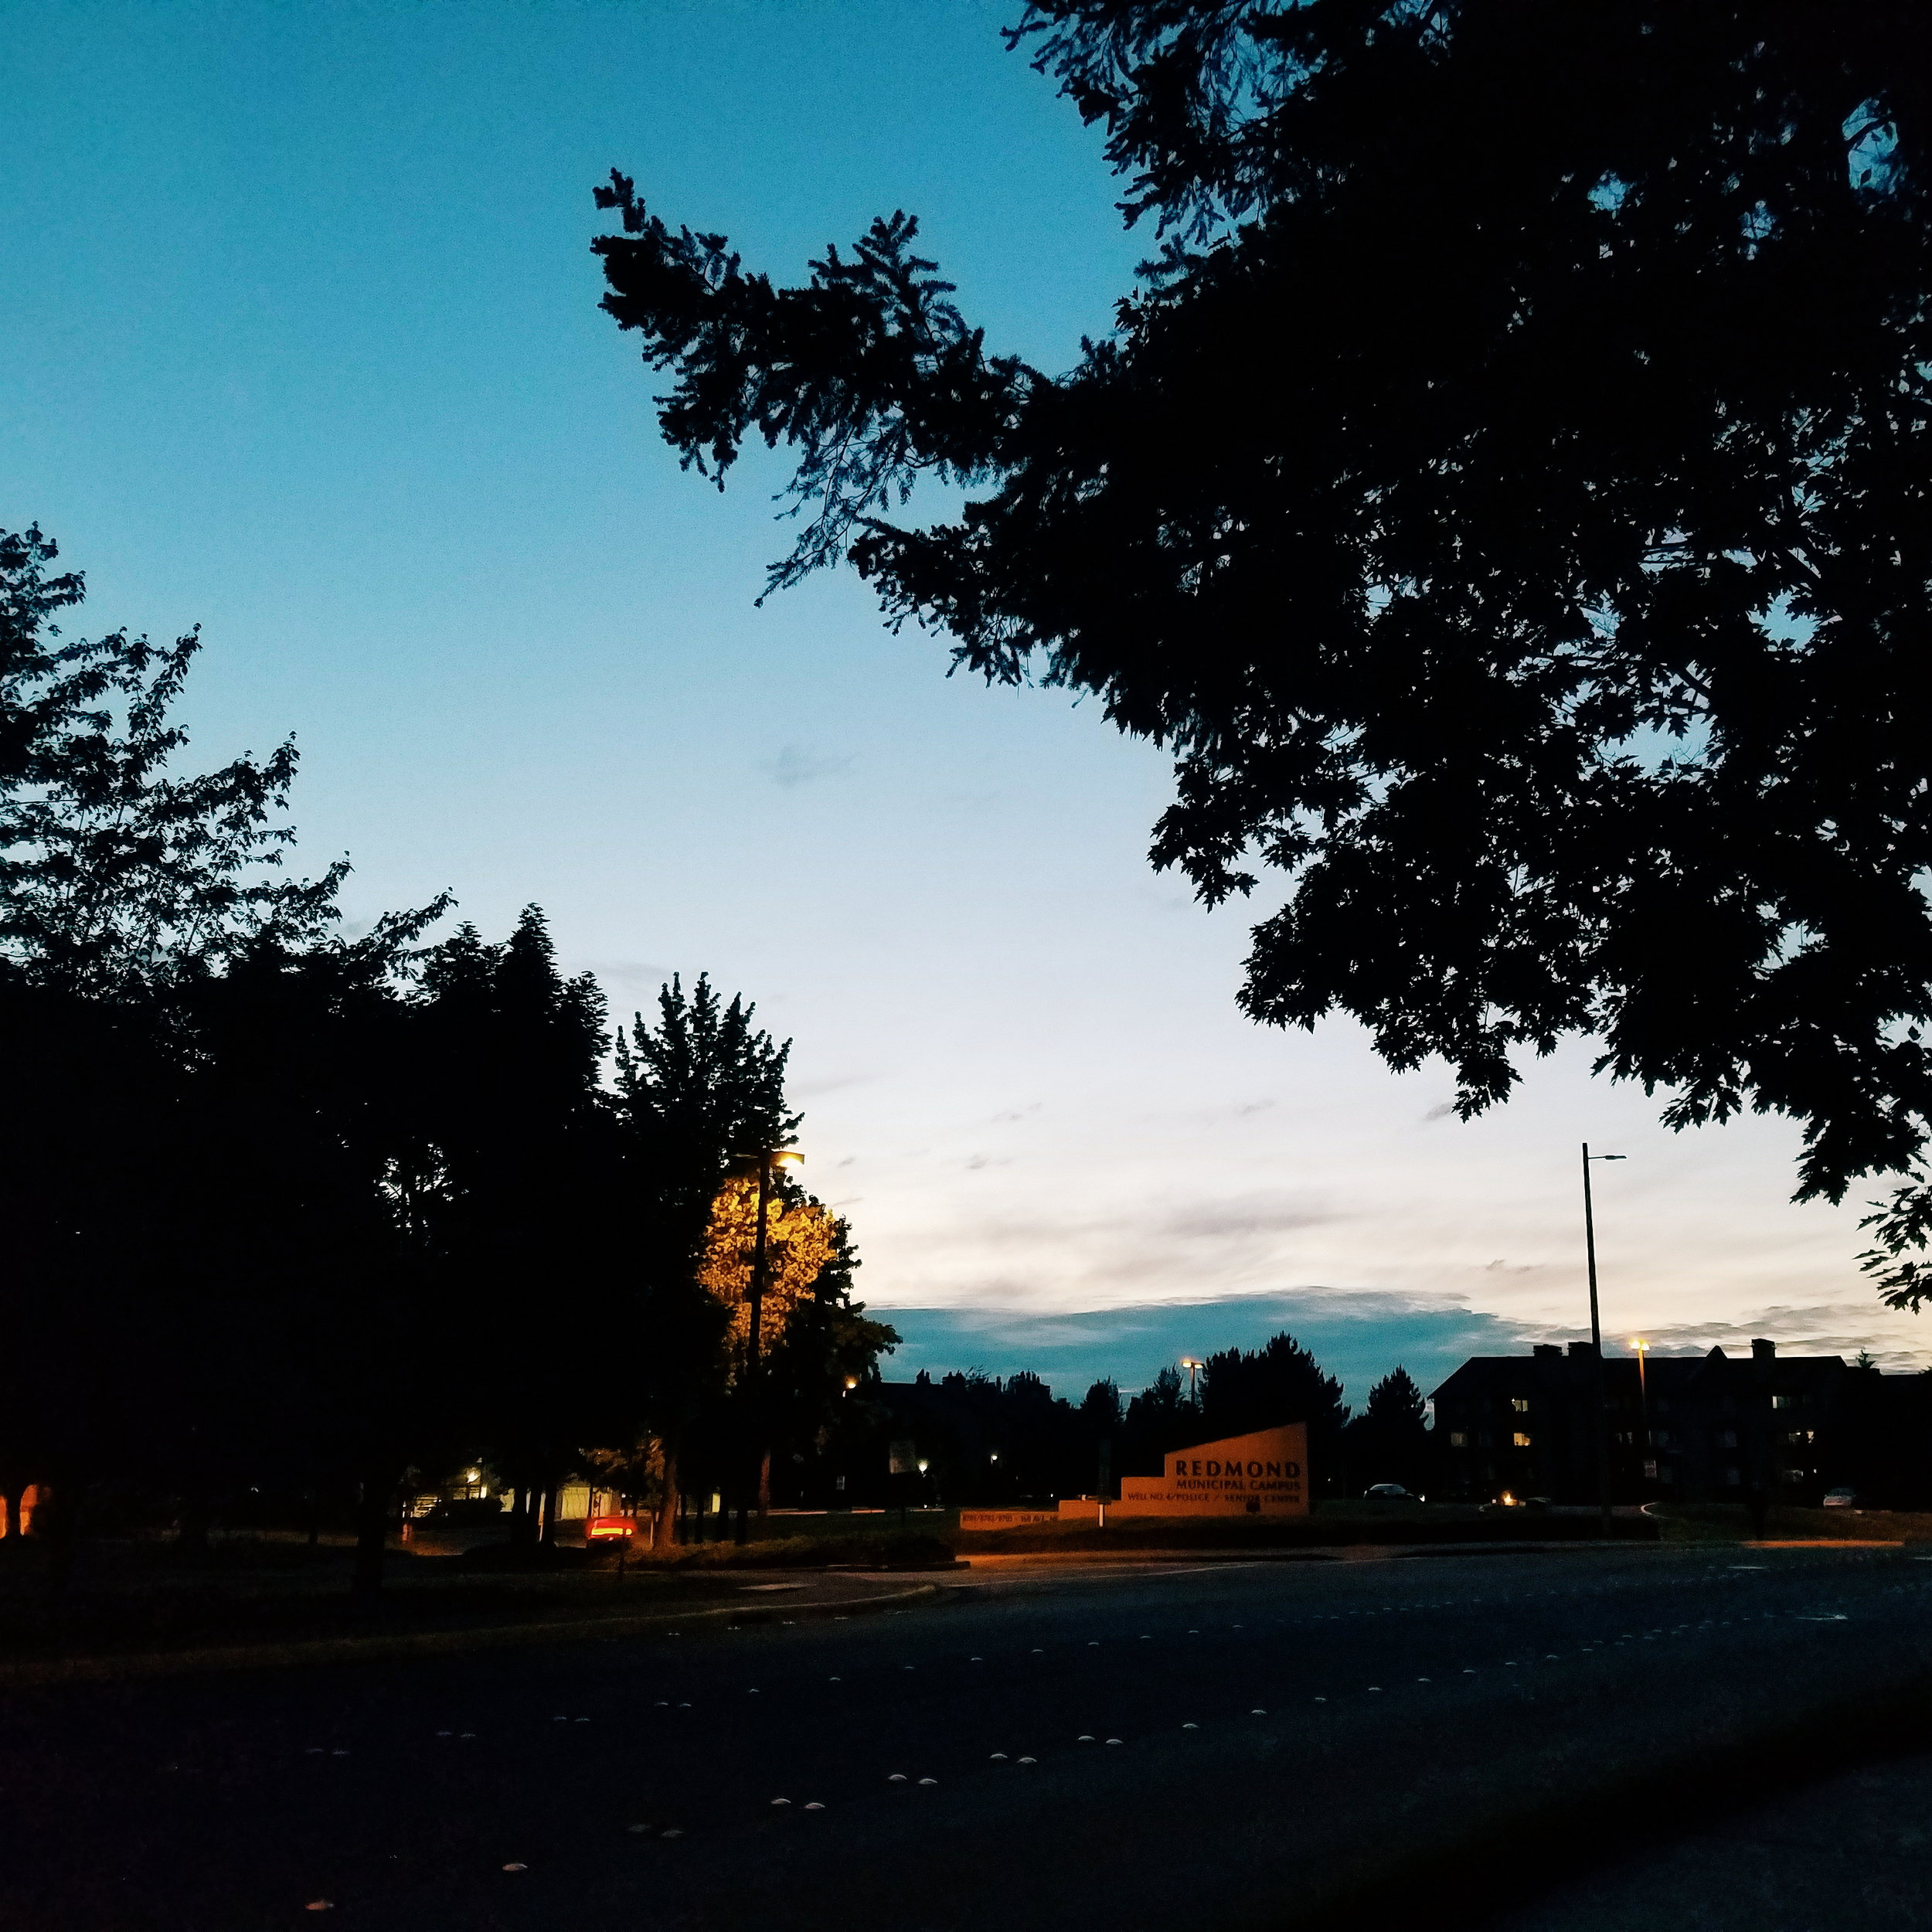 Redmond at 9:30 PM. I love these long days!